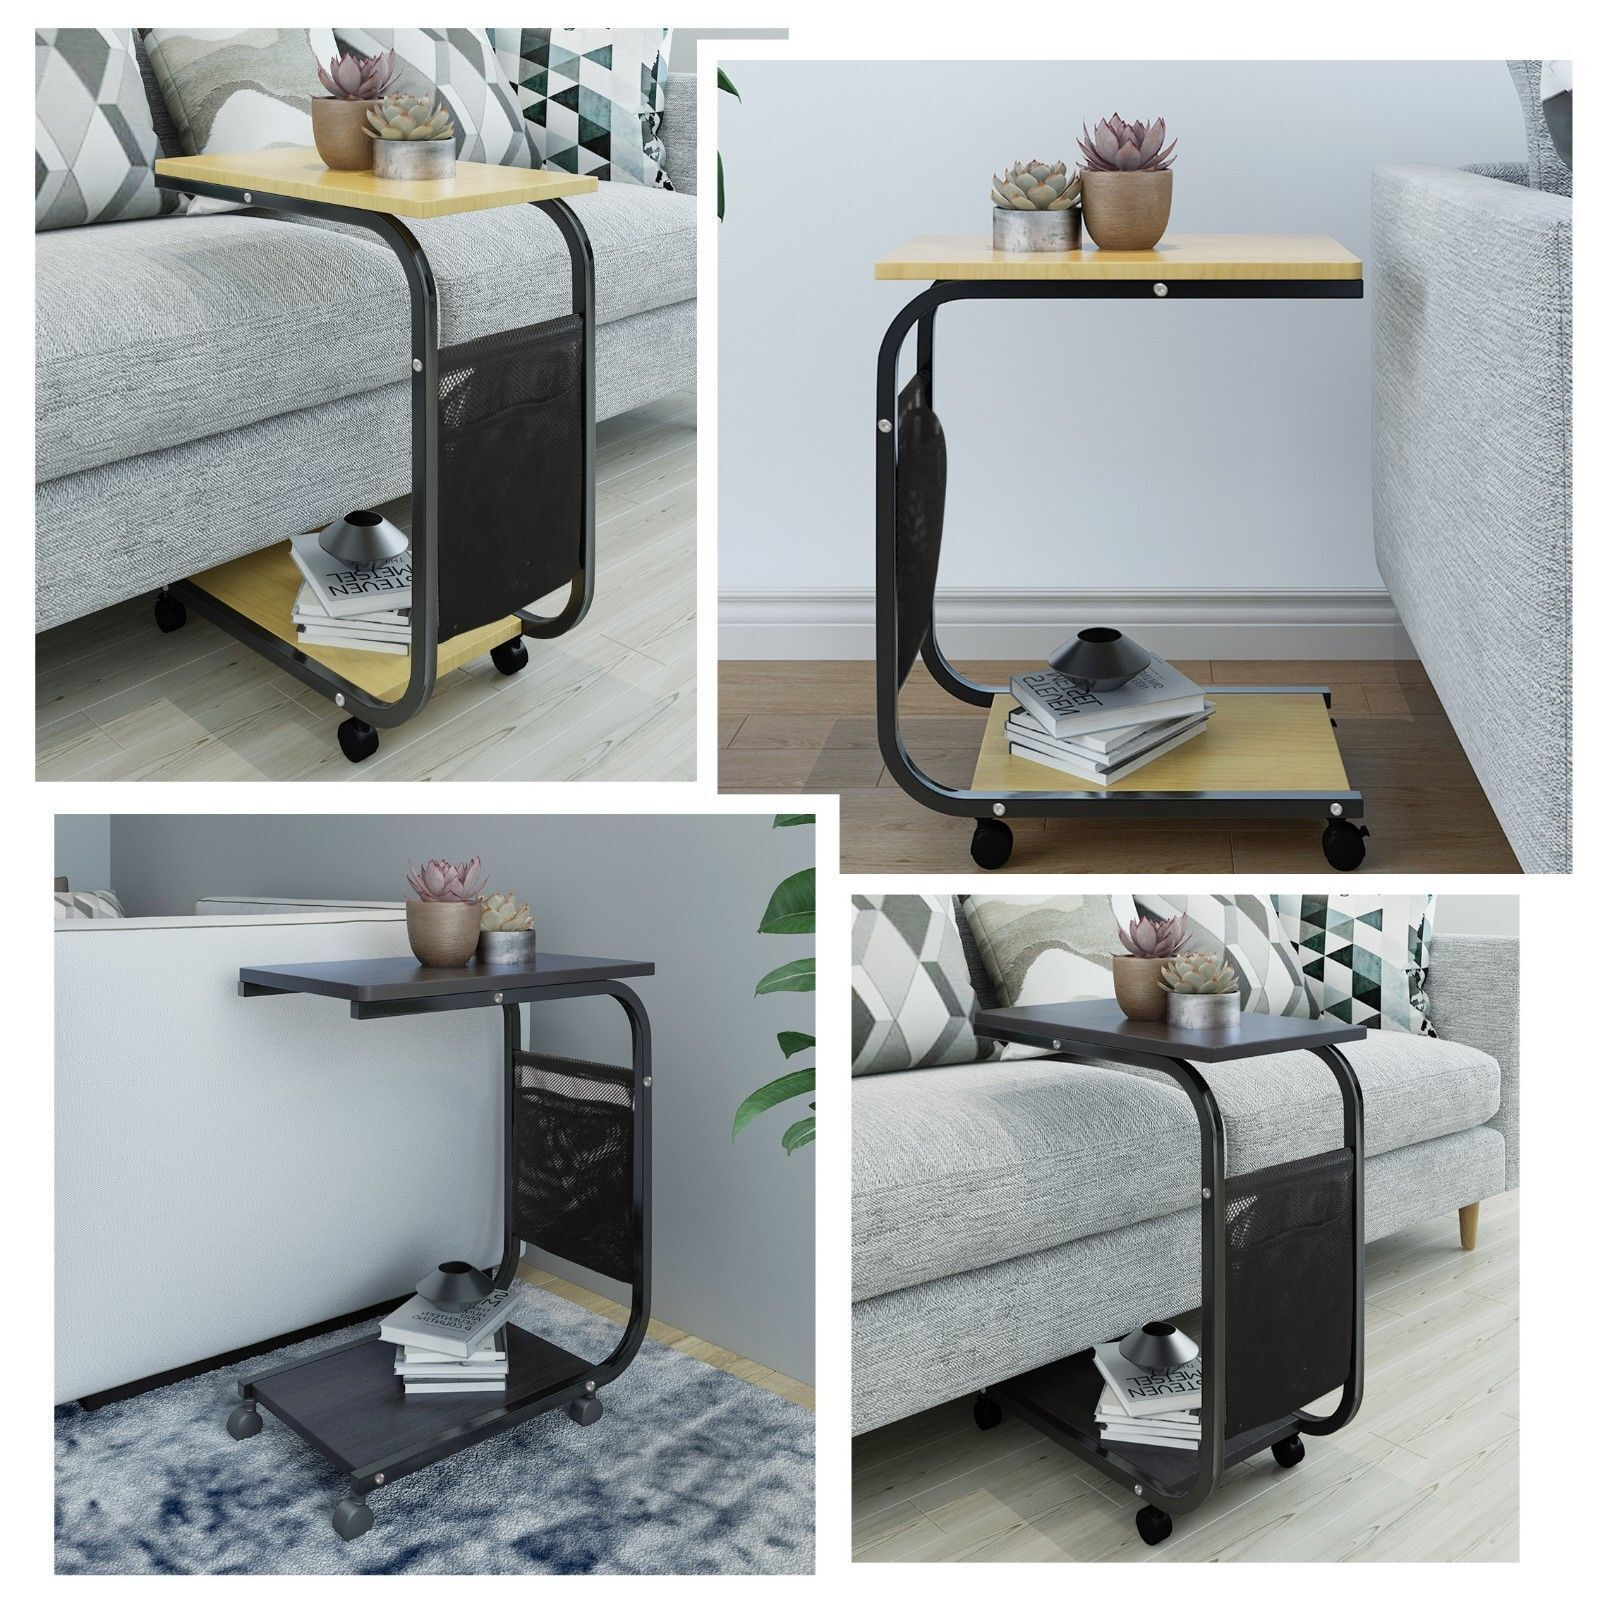 Mobile Sofa Side End Tables with Pocket Coffee Tray Bed Couch Console Stand Desk